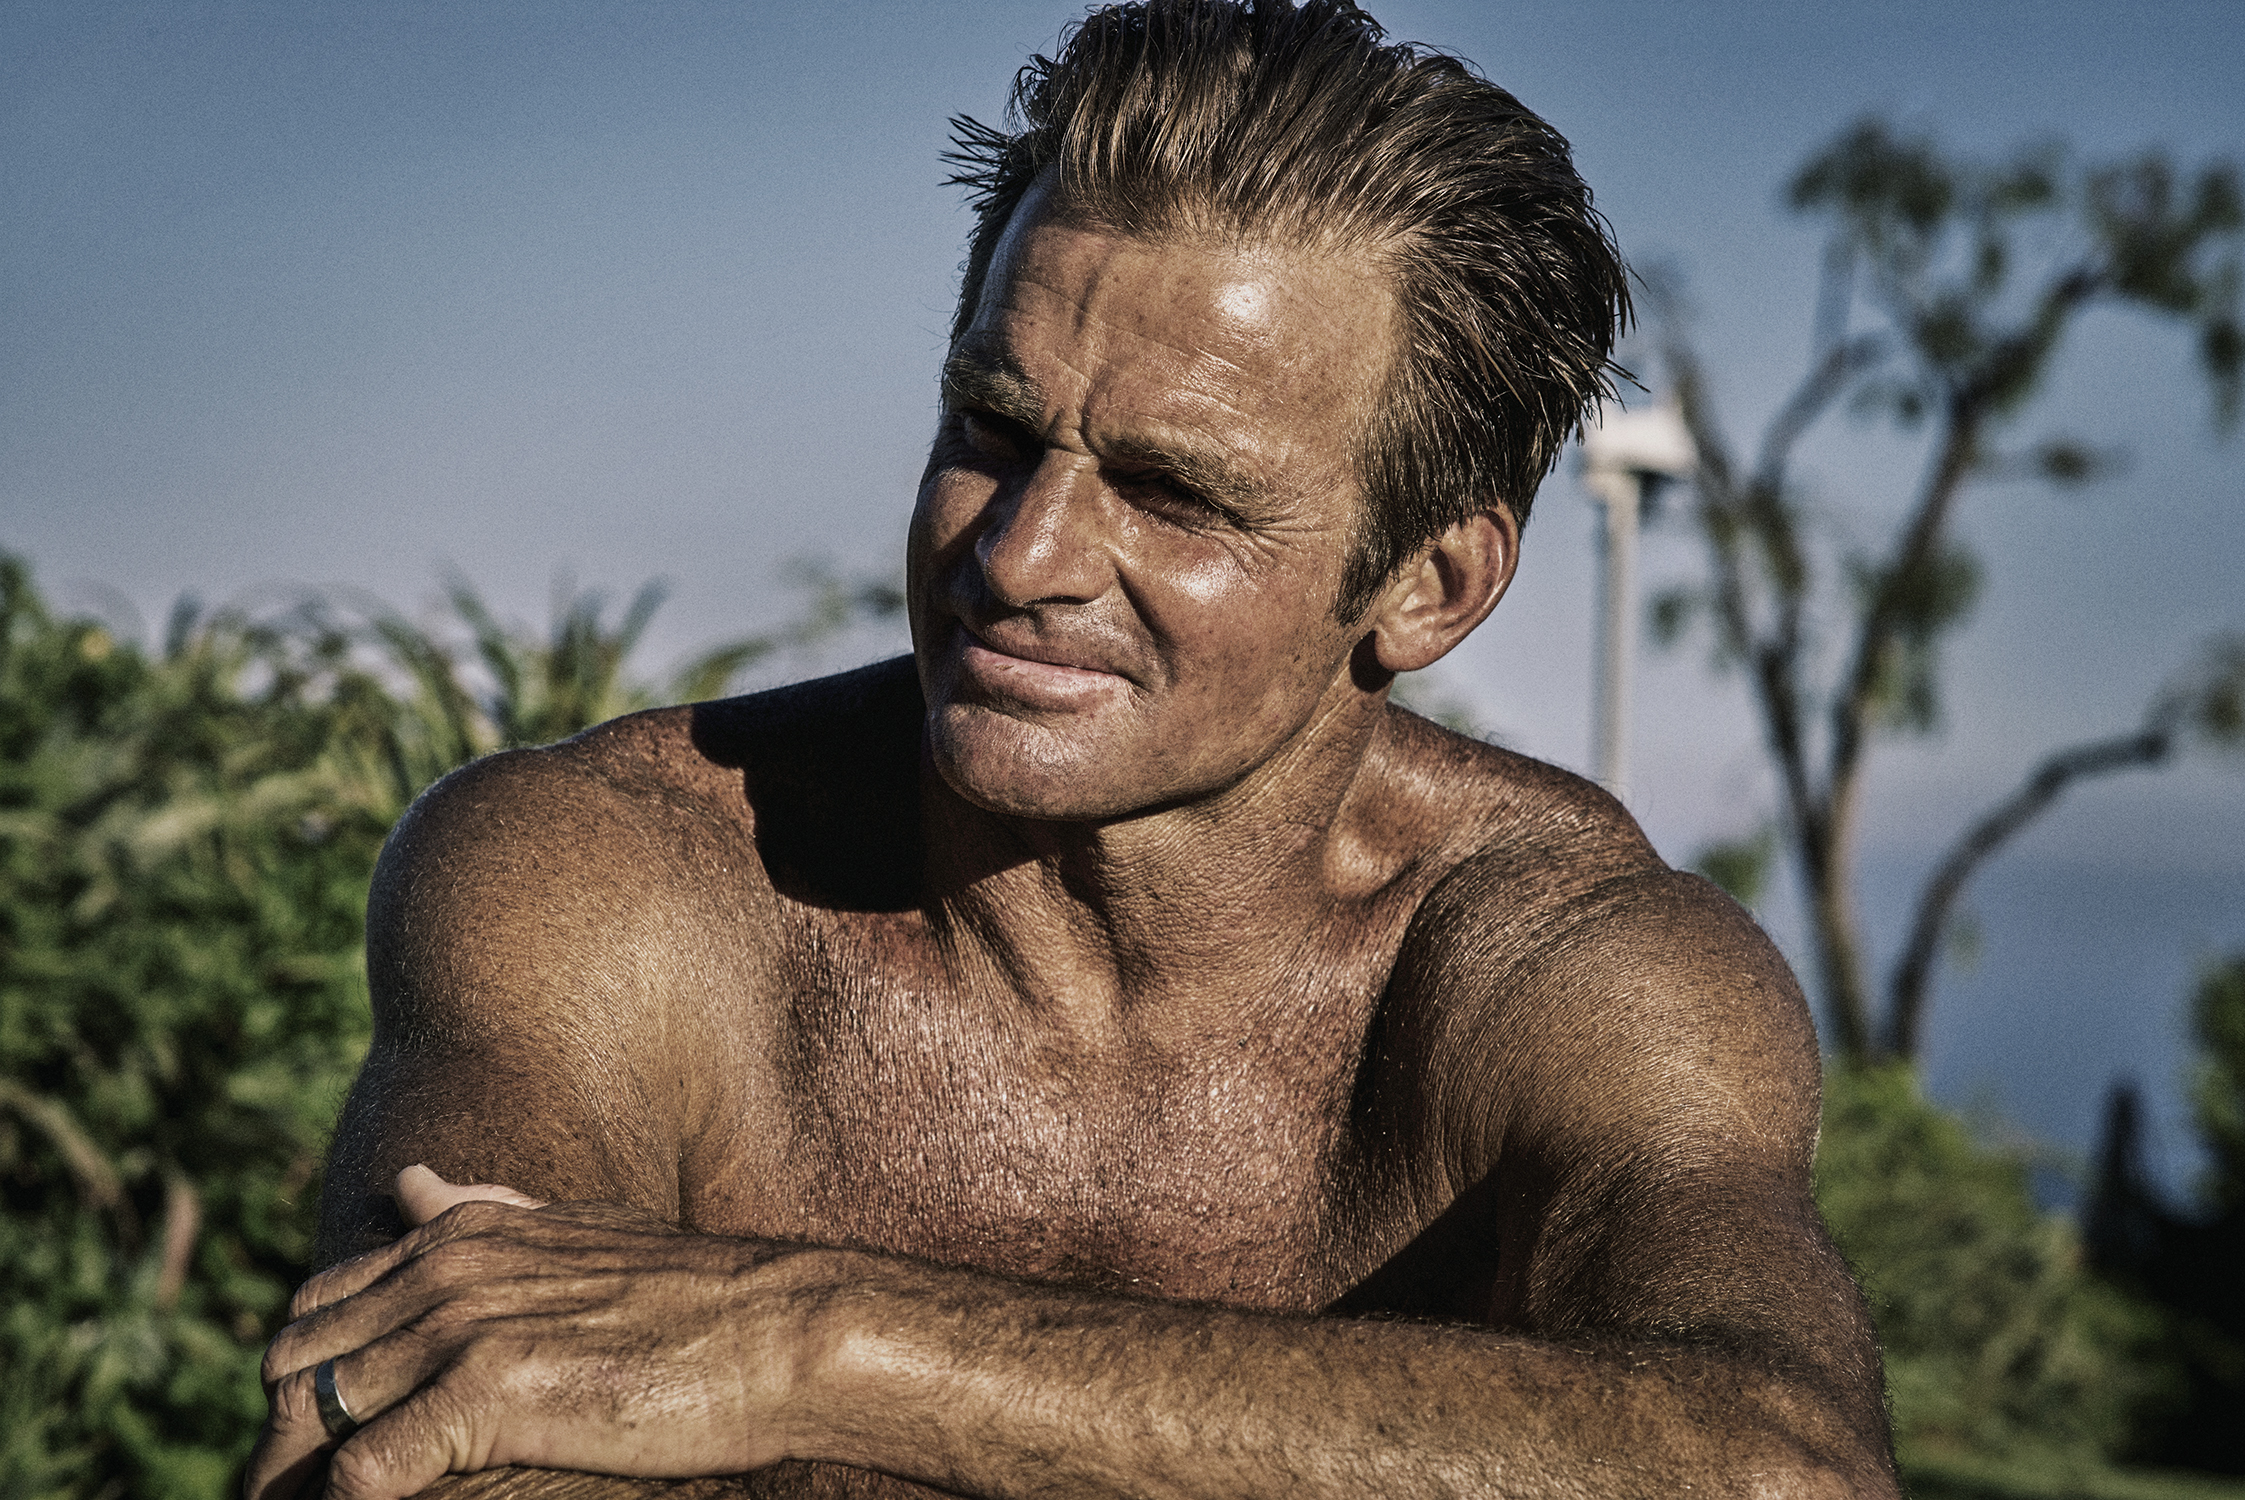 Laird Hamilton - Grooming by Mira Chai Hyde